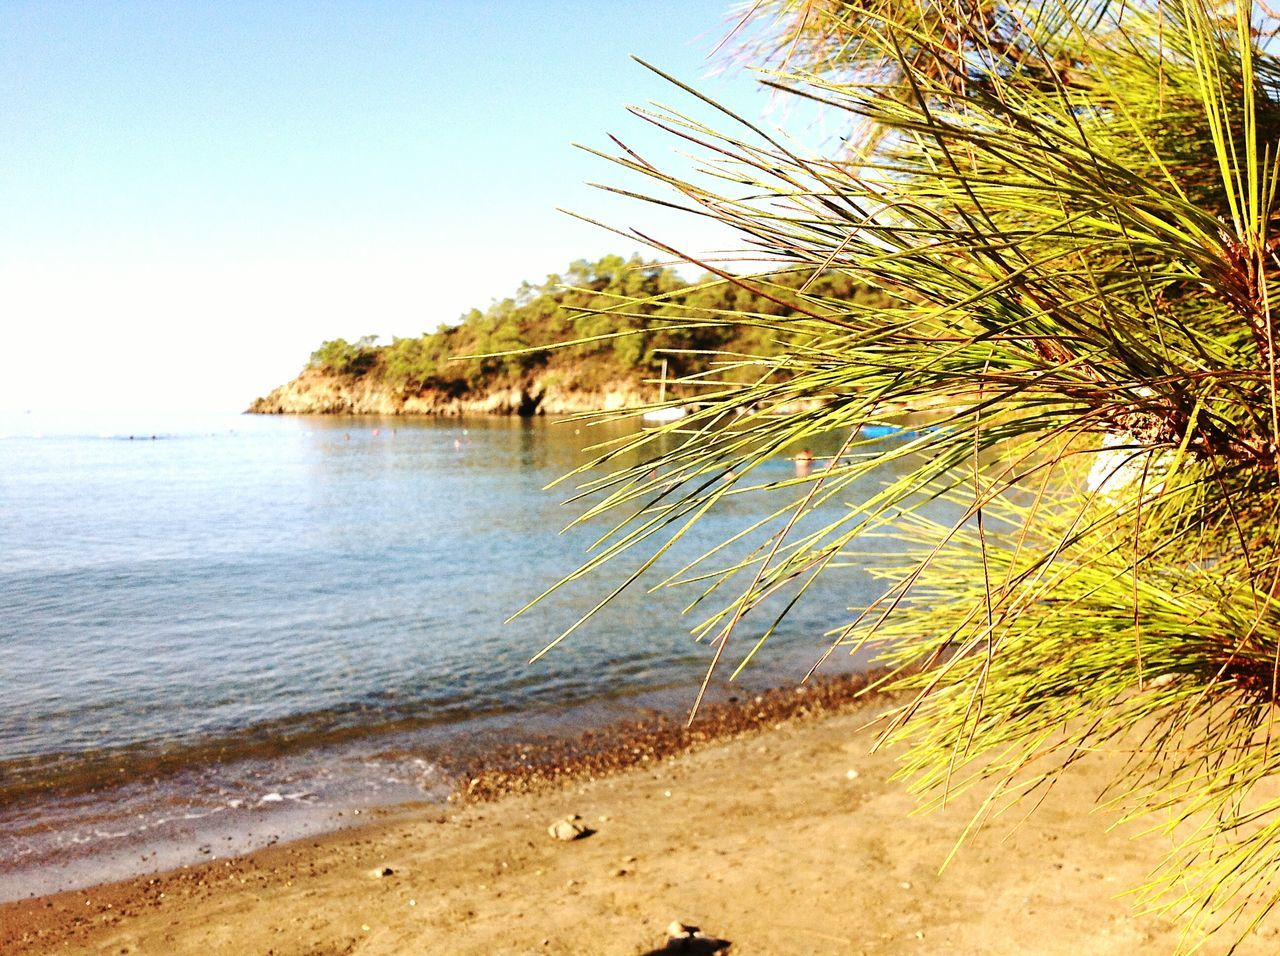 sea, tranquil scene, nature, beach, tranquility, water, scenics, no people, sand, beauty in nature, outdoors, day, clear sky, tree, sky